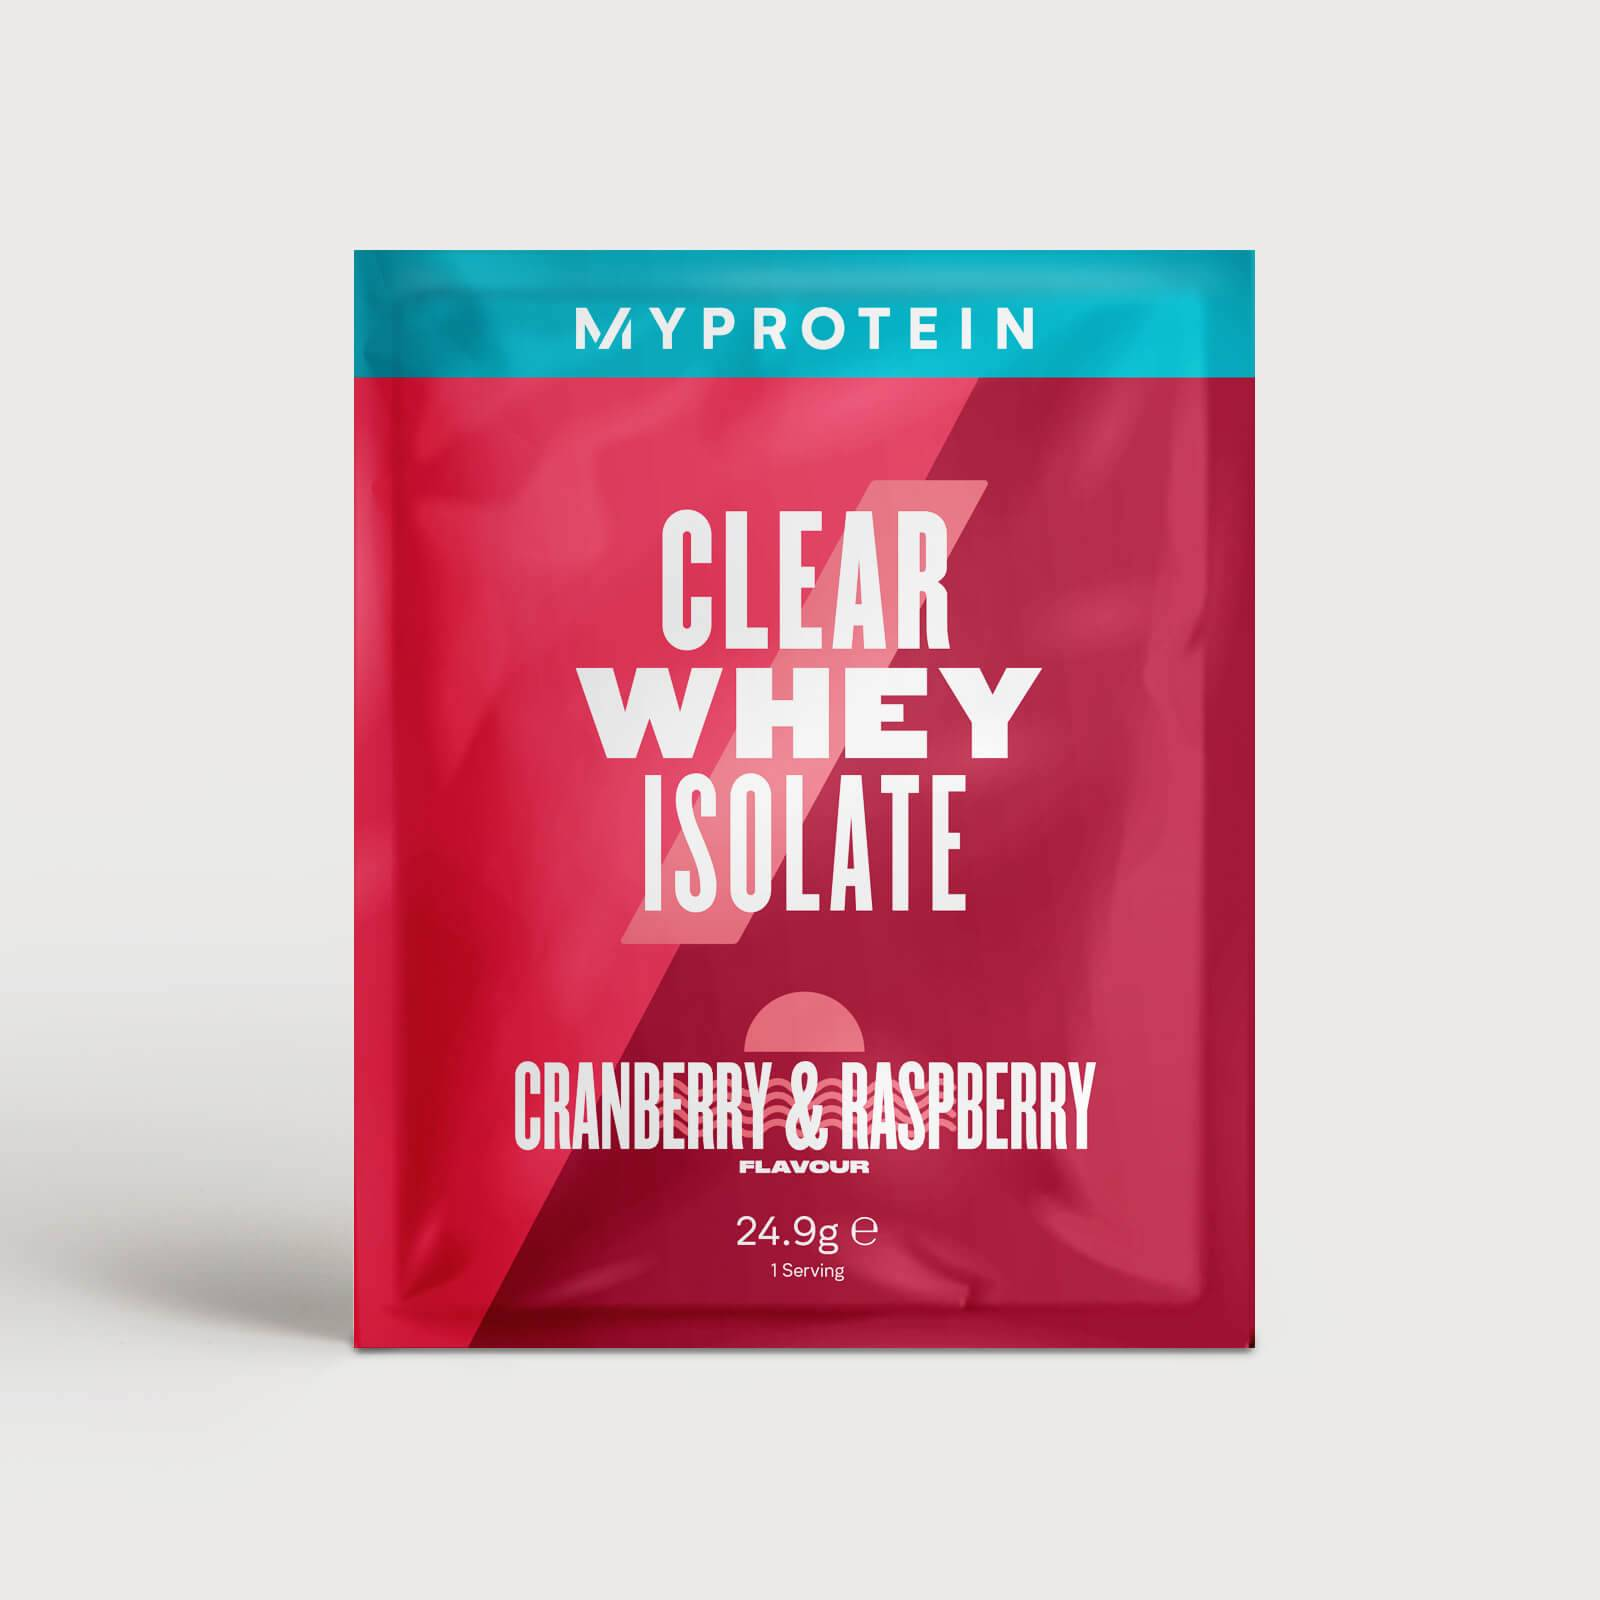 Myprotein Clear Whey Isolate (Sample) - 24.9g - Mirtillo rosso e lampone